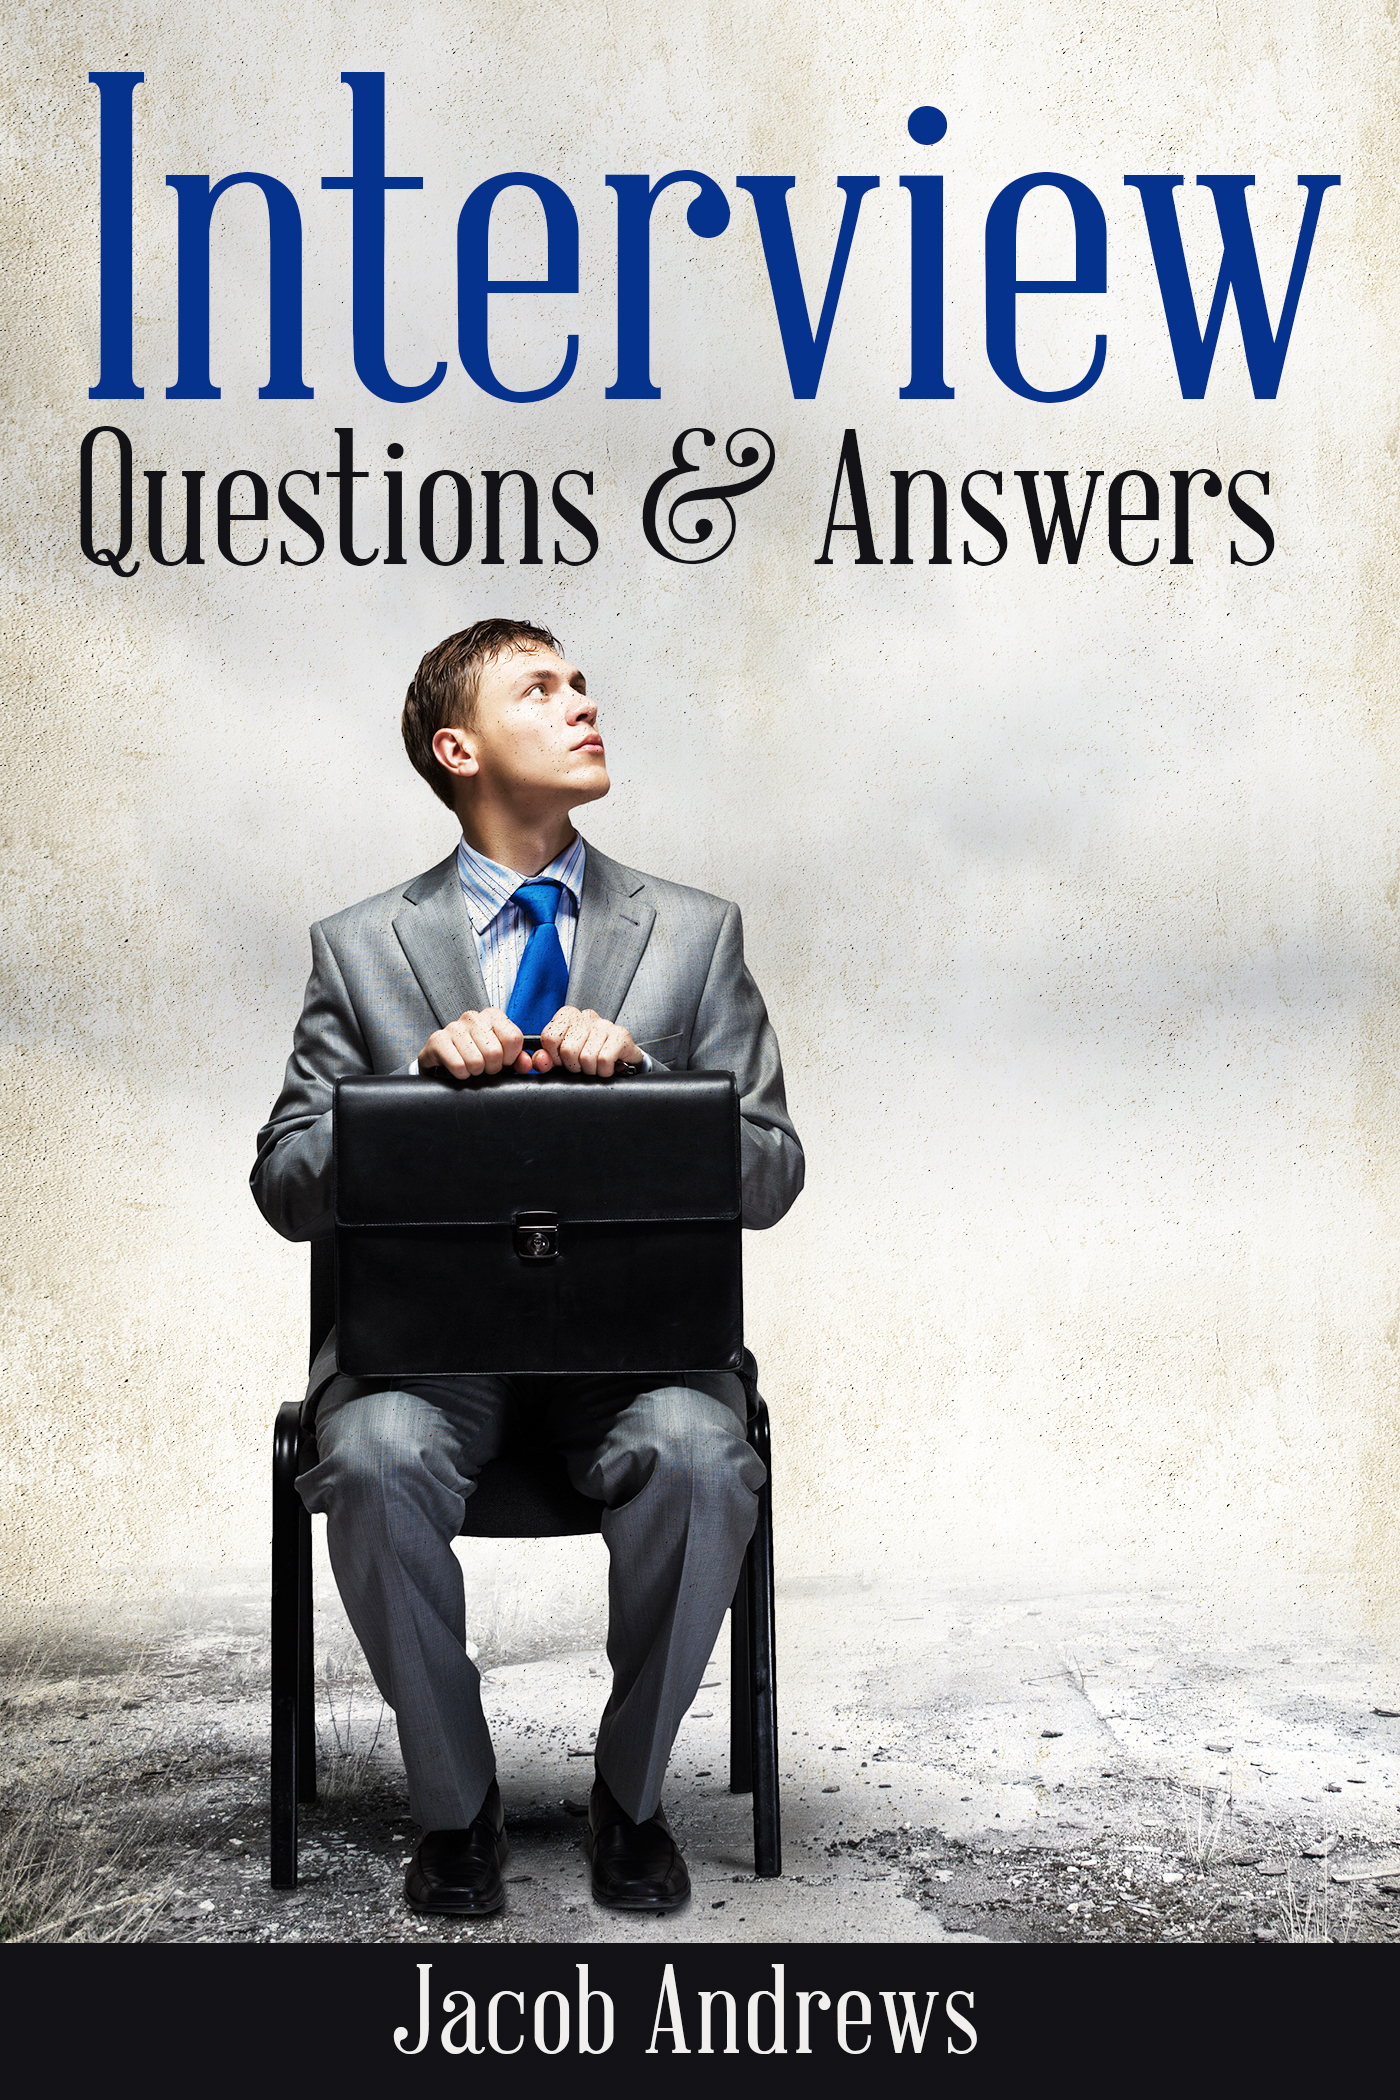 Interview questions and answers: the best answers to the toughest job interview questions